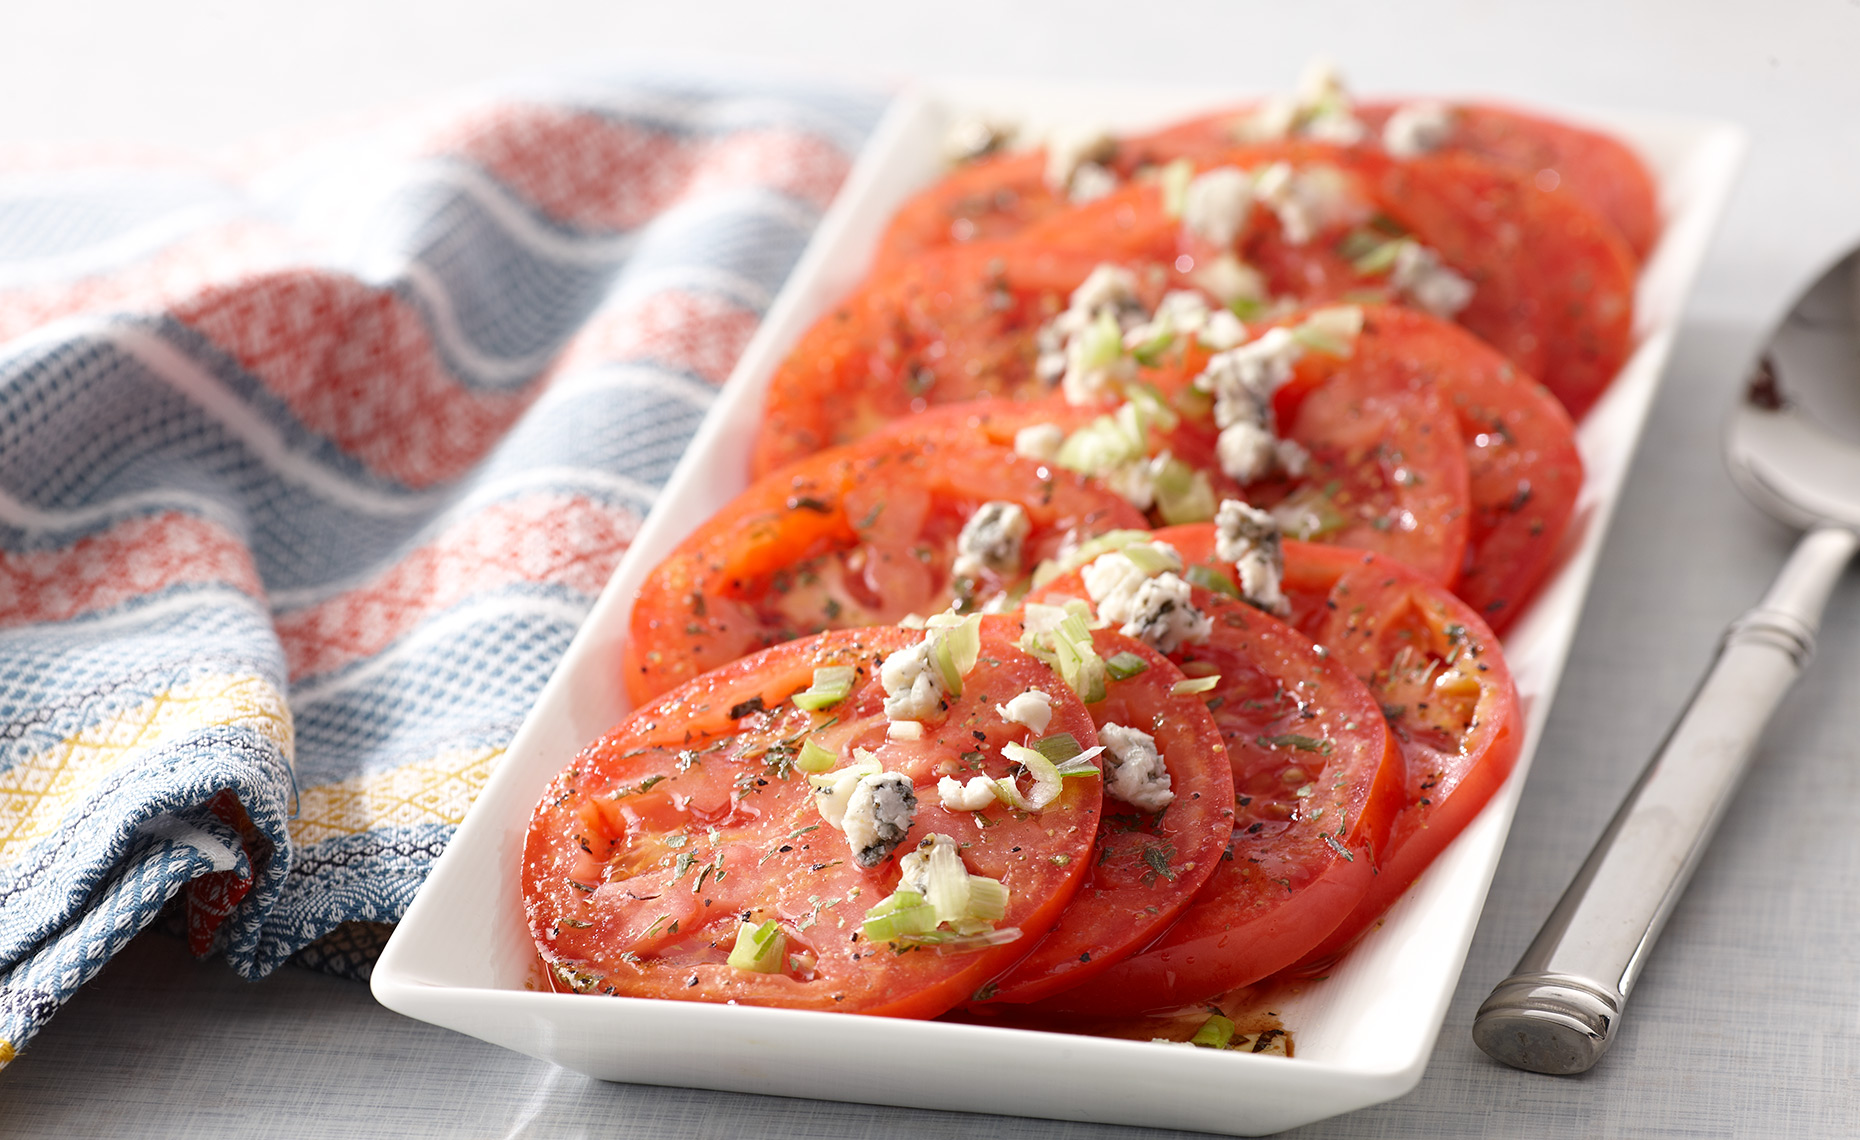 Food Photographer, Vegetable photography, Fruit photography | Pohuski Studios, Tomatoes Blue Cheese